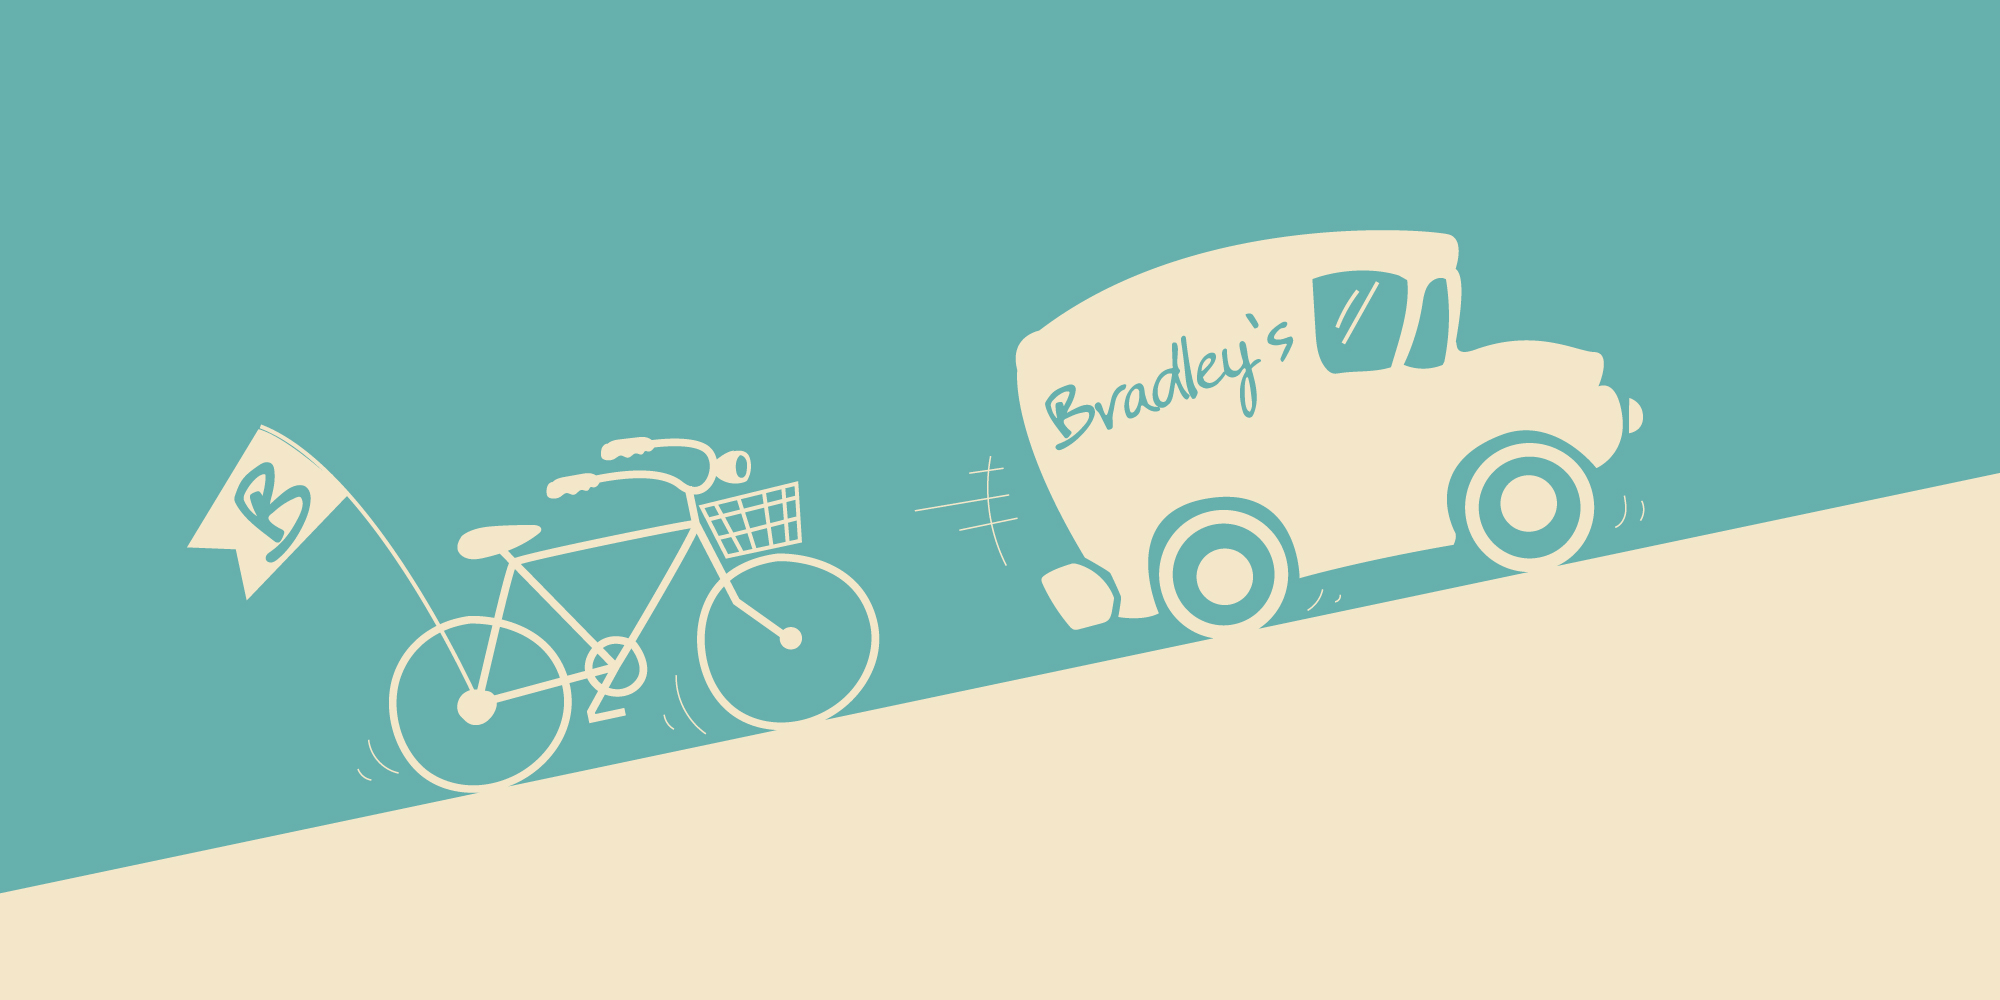 Bradleys Supermarket delivery illustration for the store.